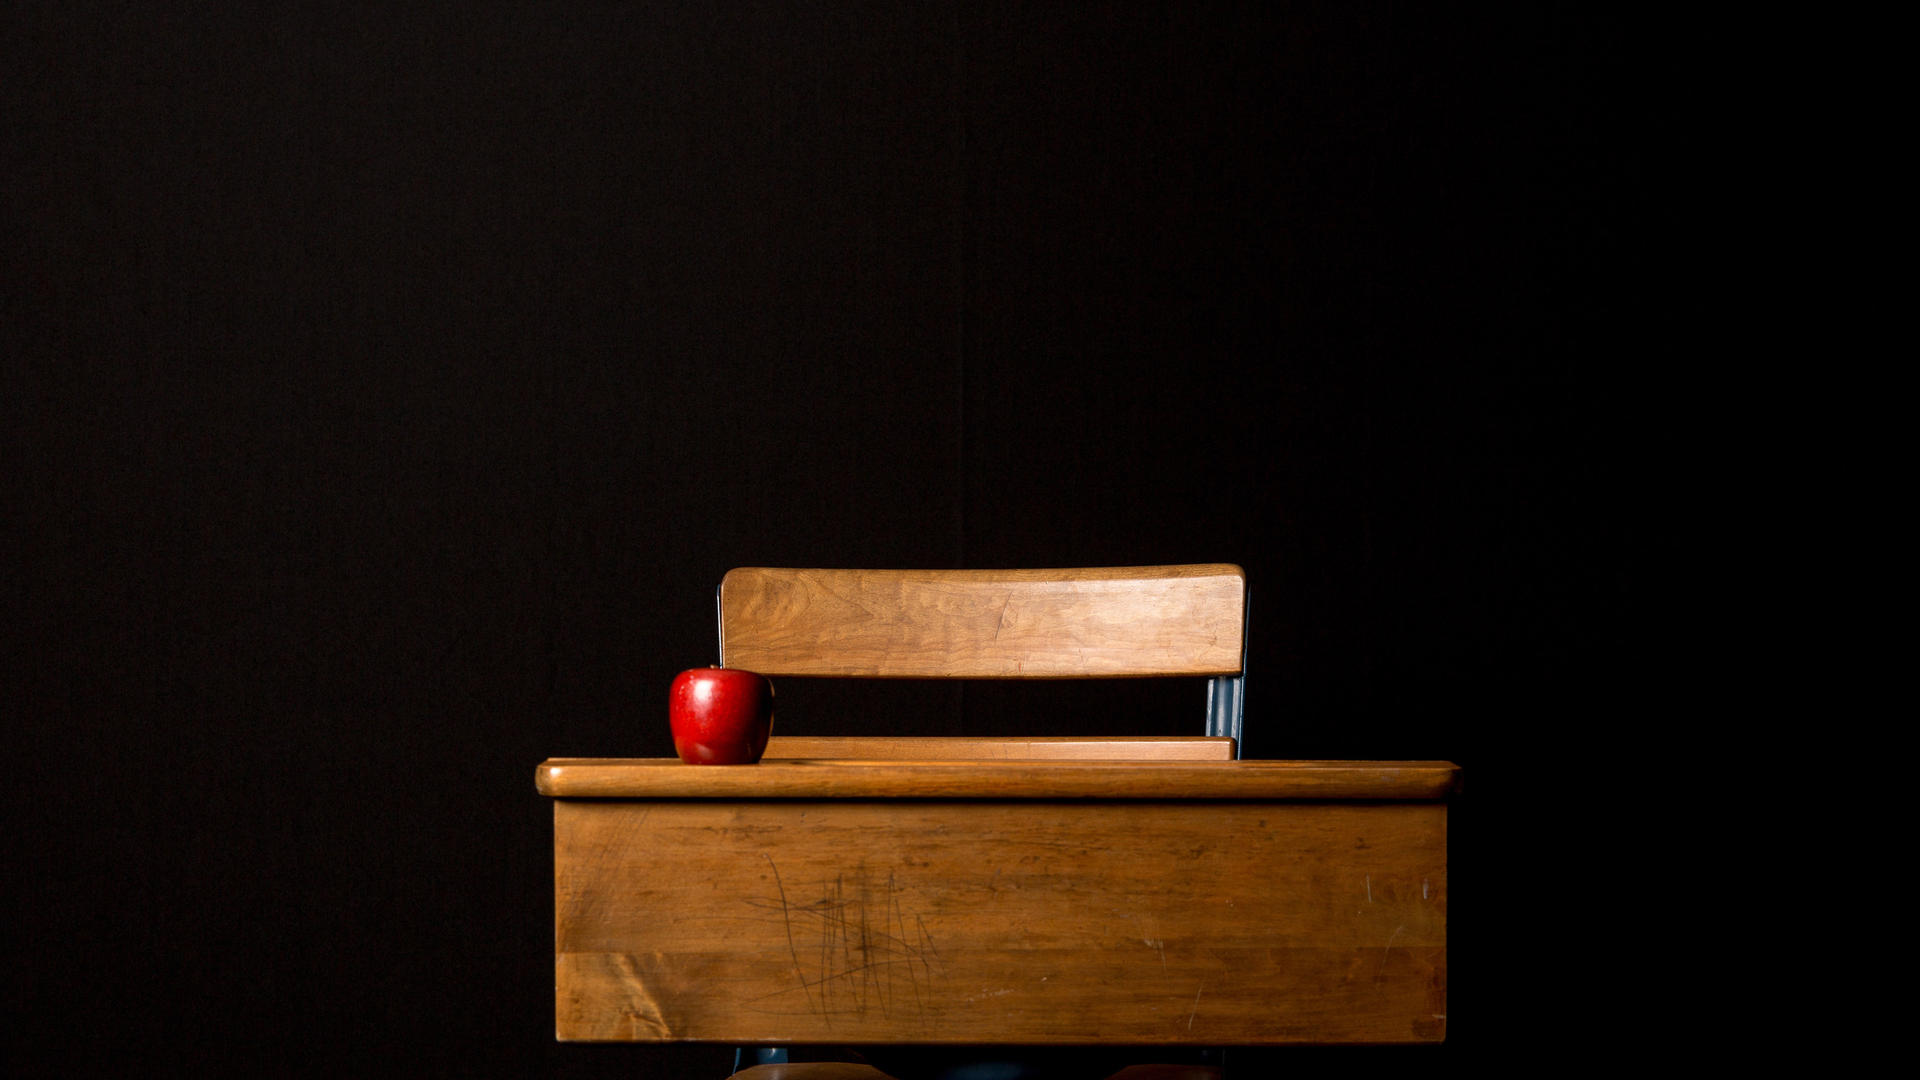 Adult Education: Working with Non-Traditional Audiences